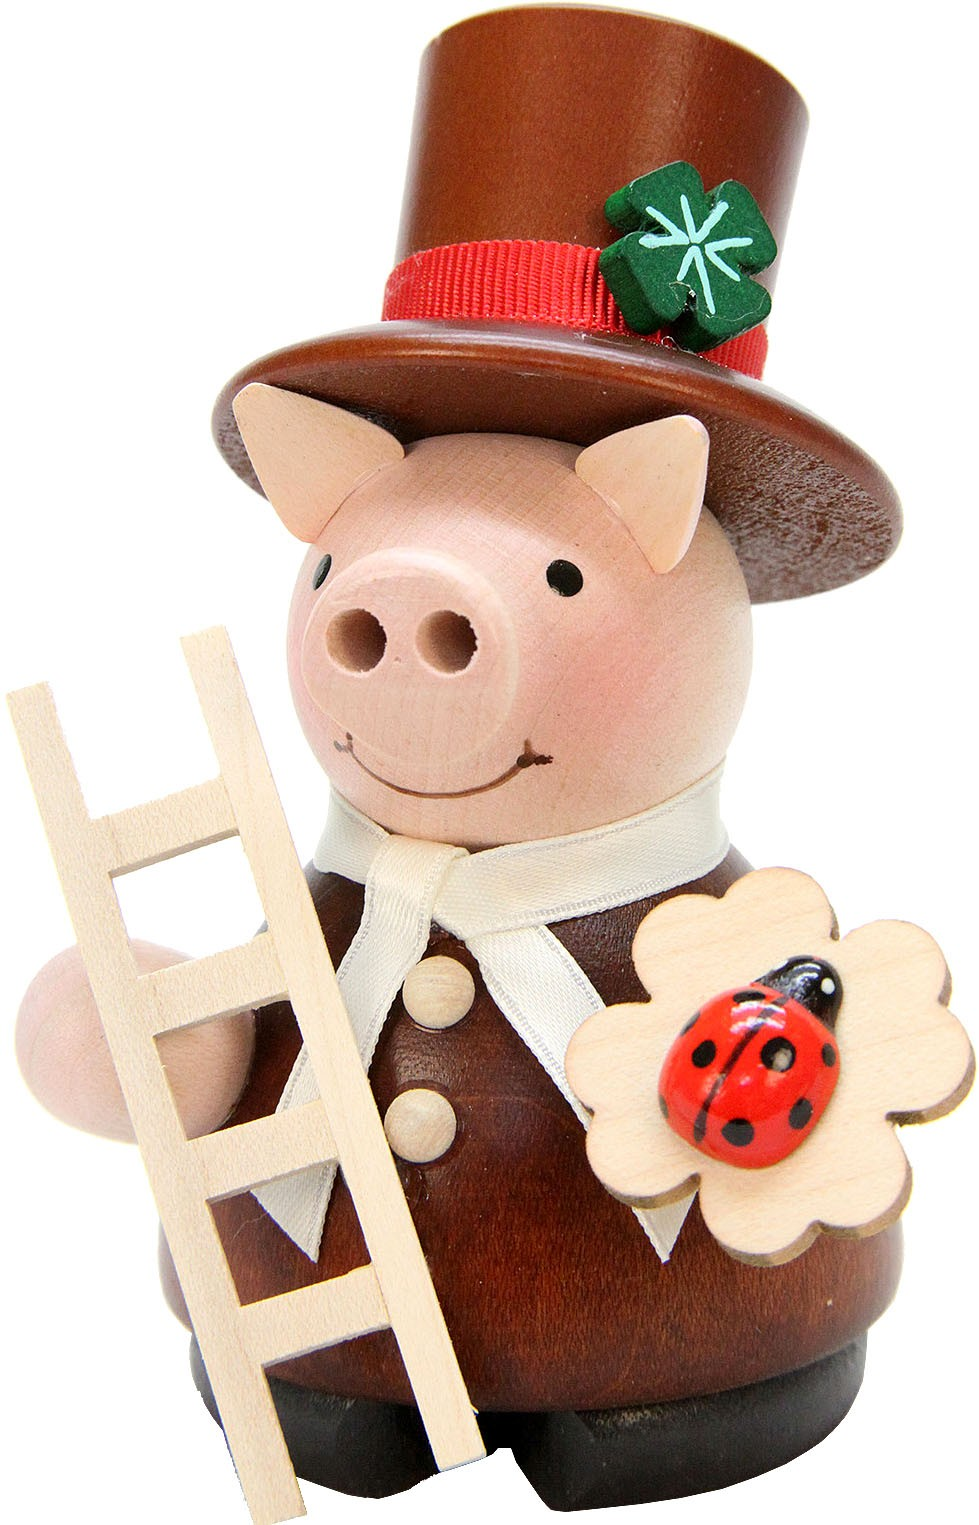 incense smoker, lucky pig chimney sweep, natural